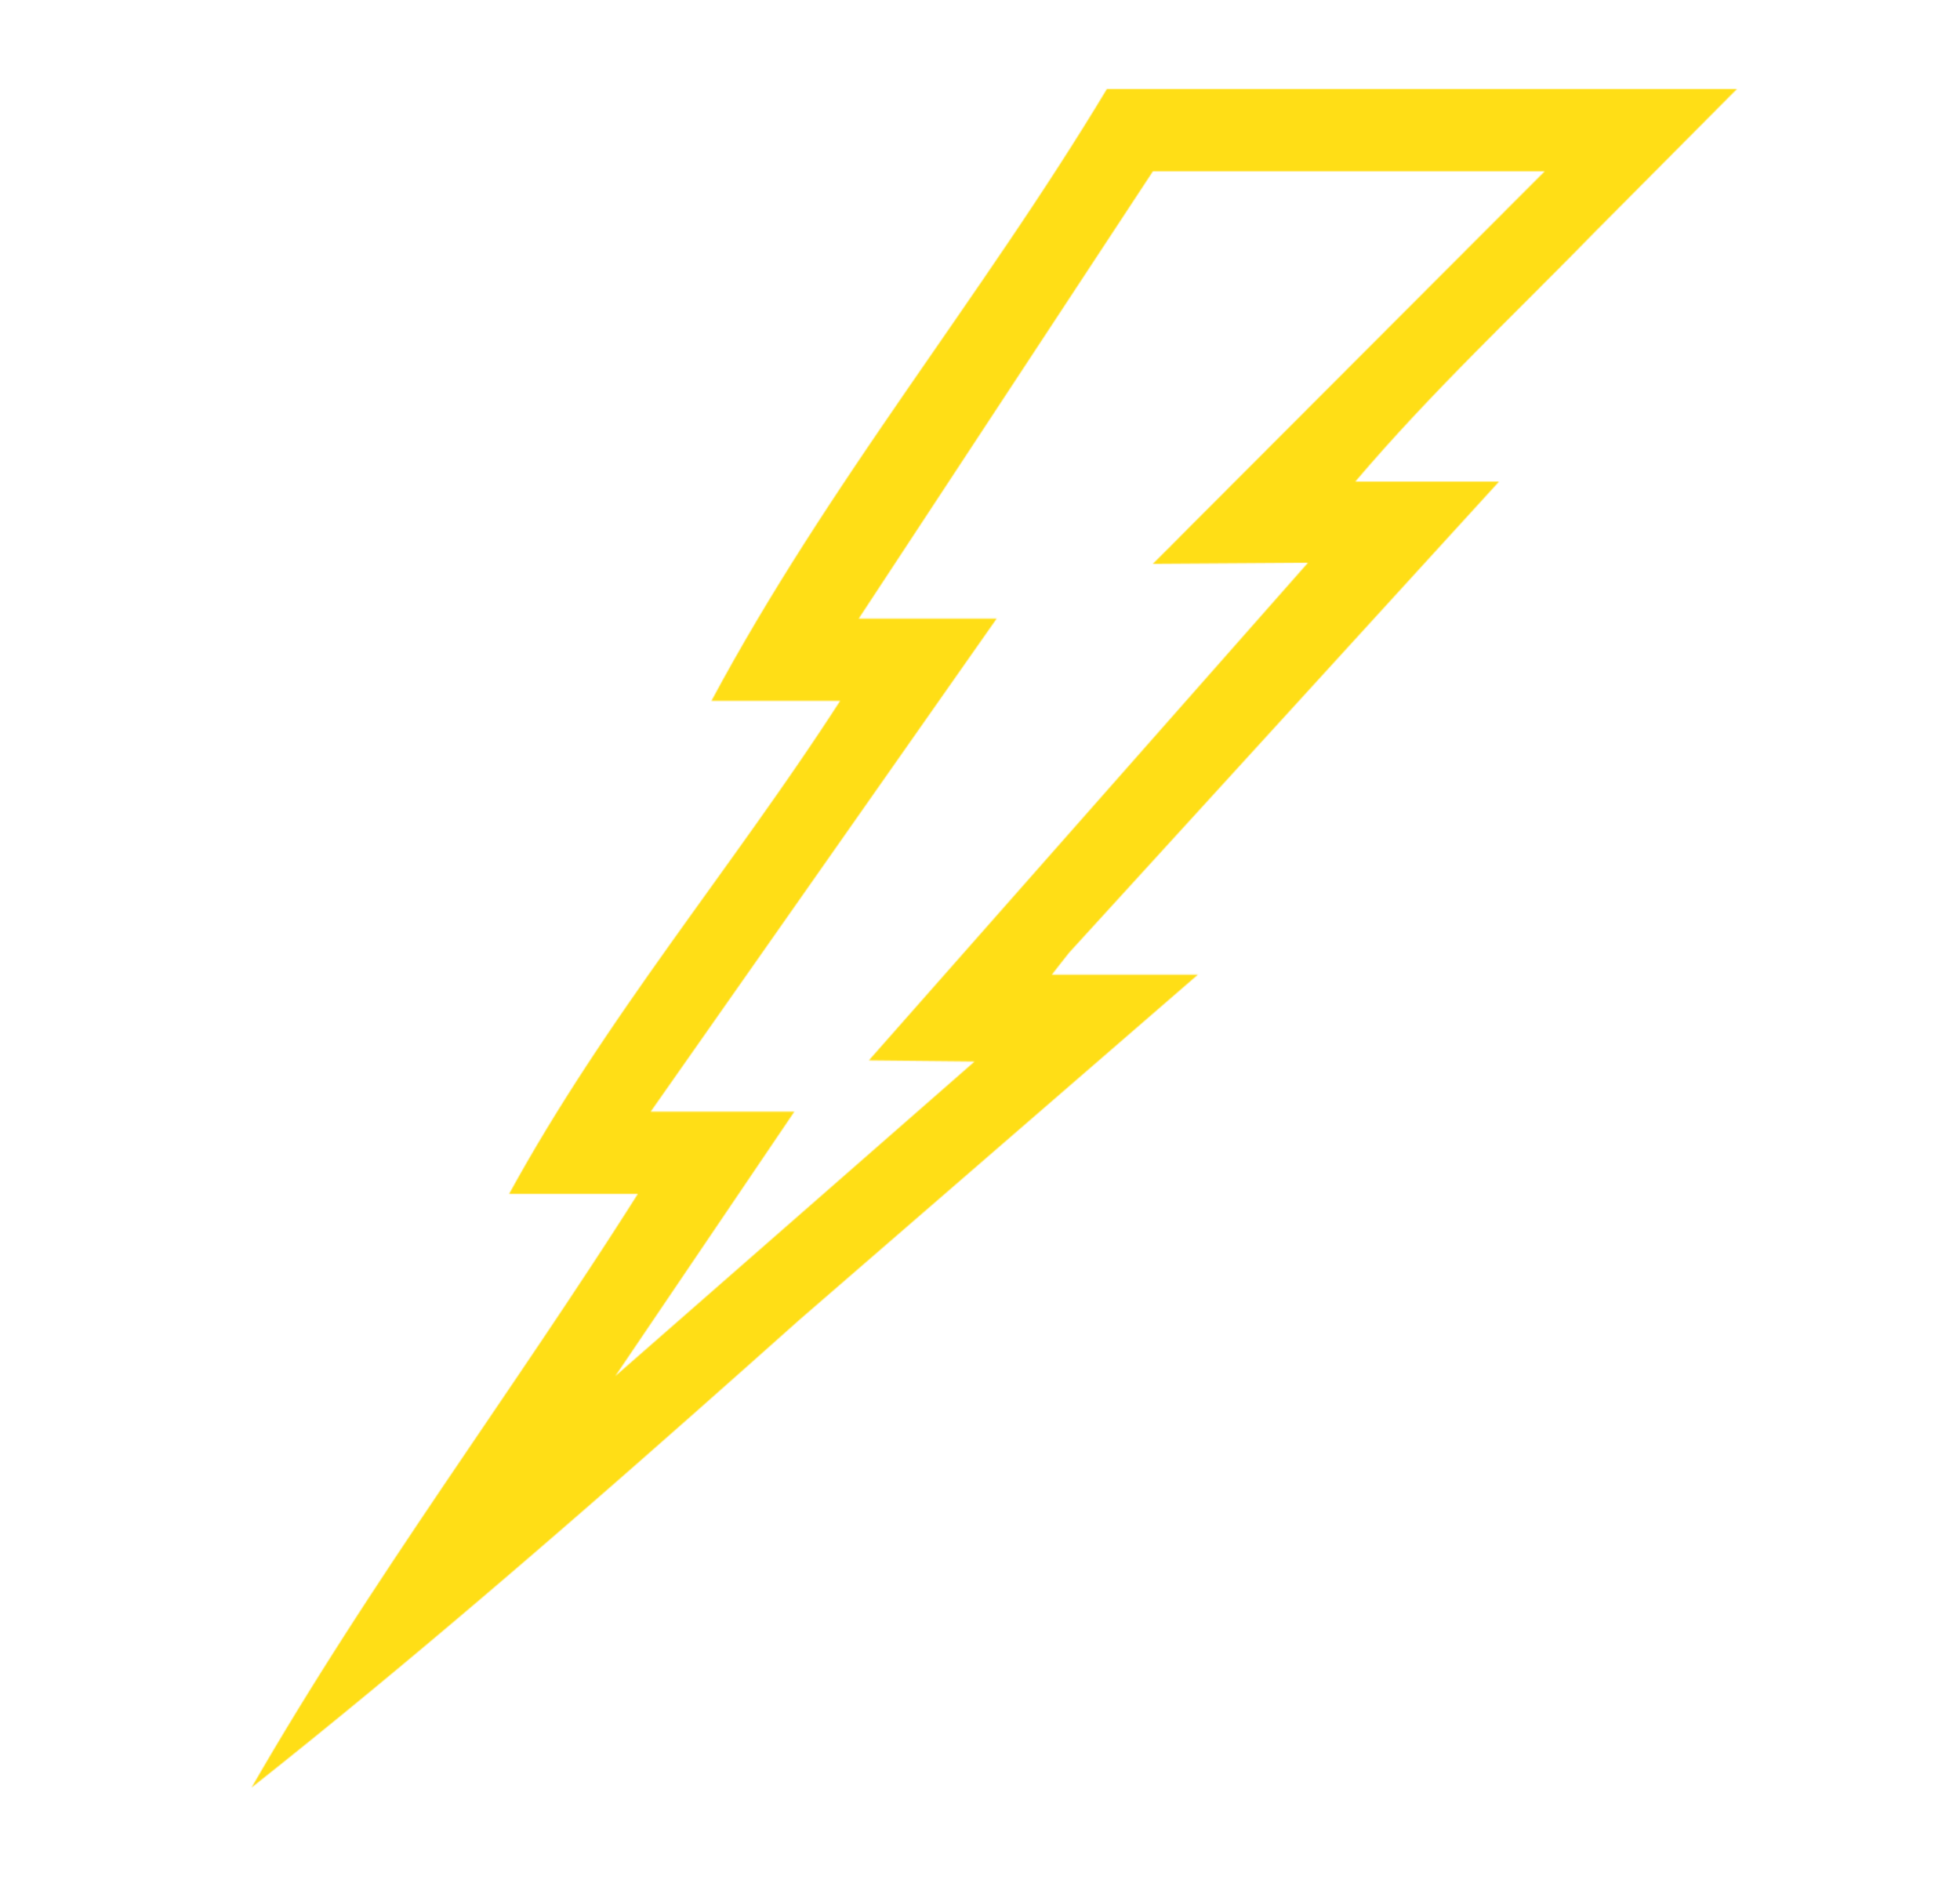 Lightning bolt yellow lightning electricity bolt thunder #44055